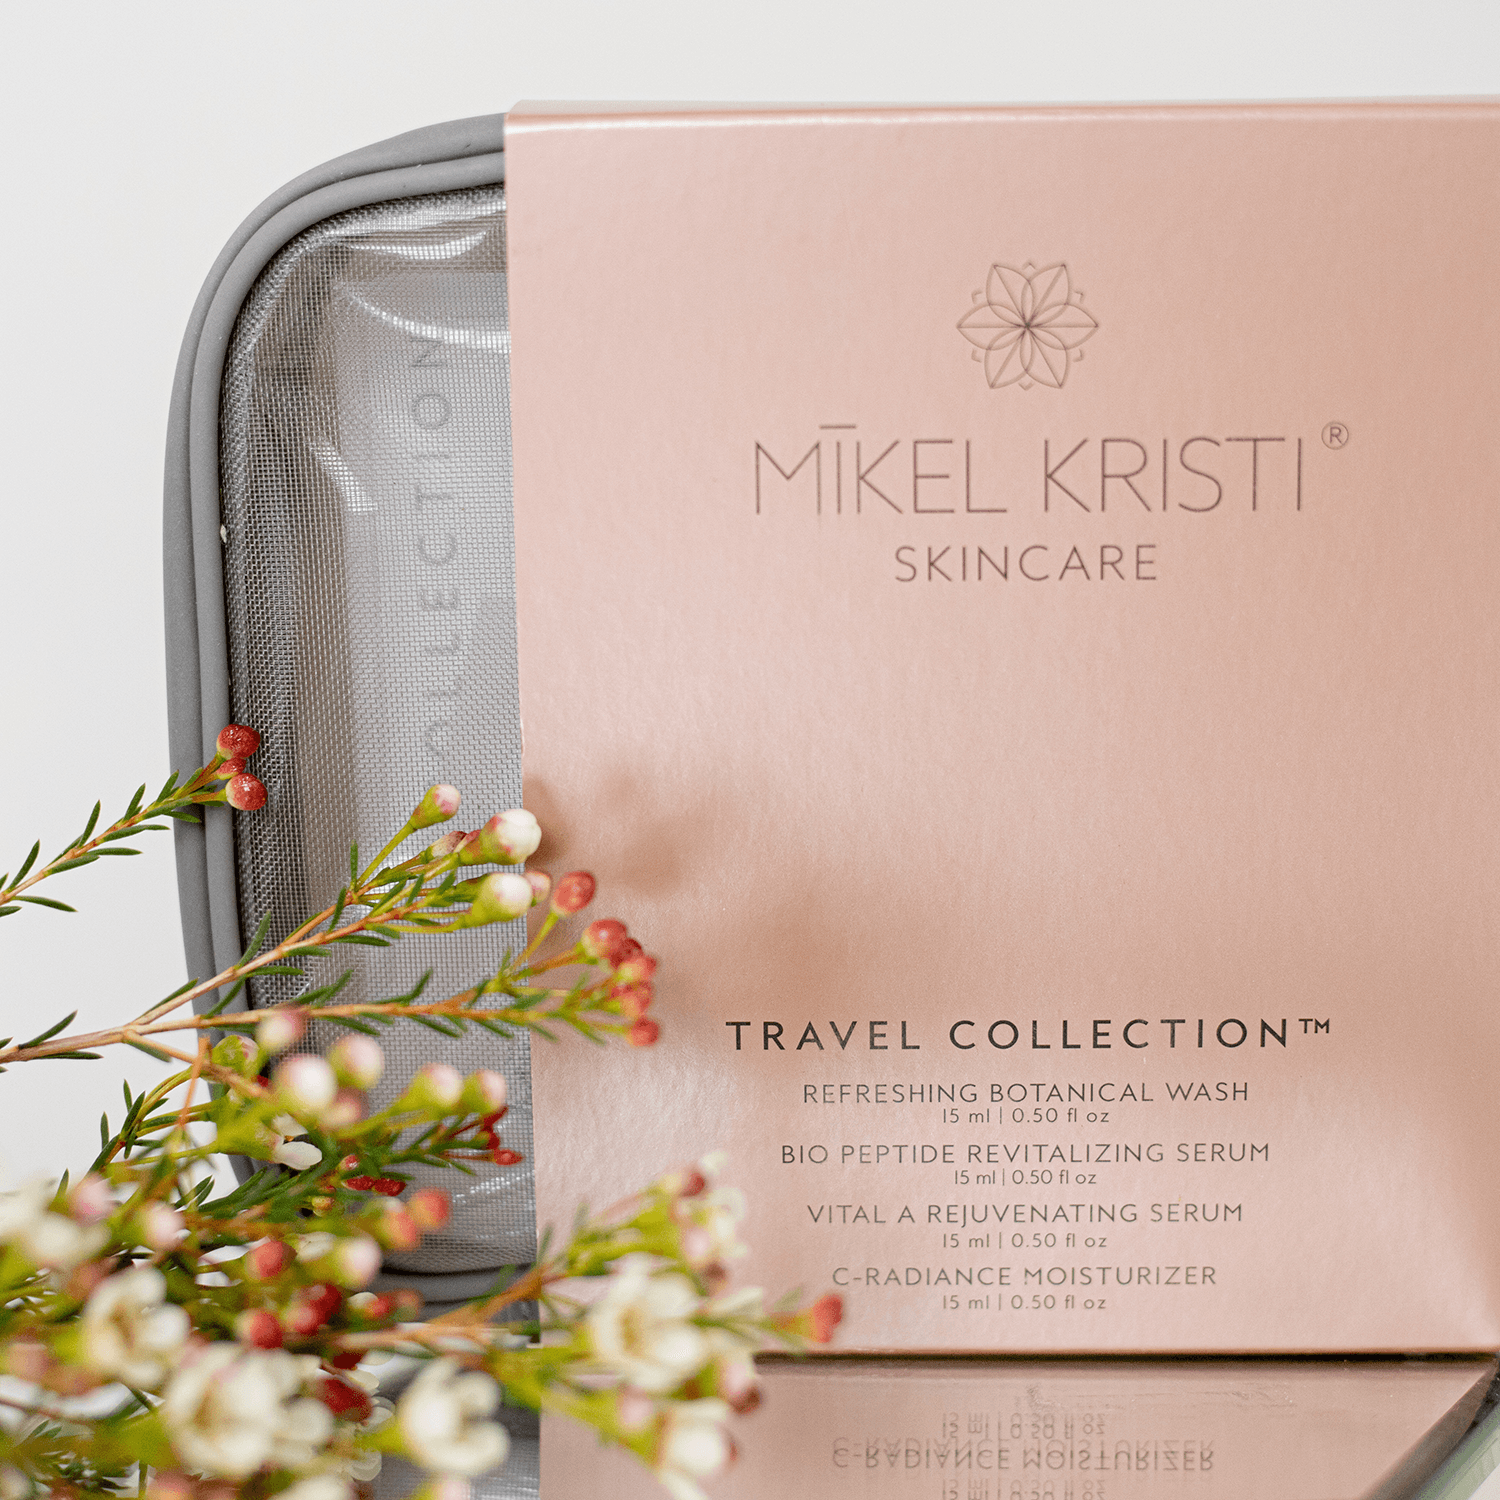 TSA Travel Kit by Mikel Kristi